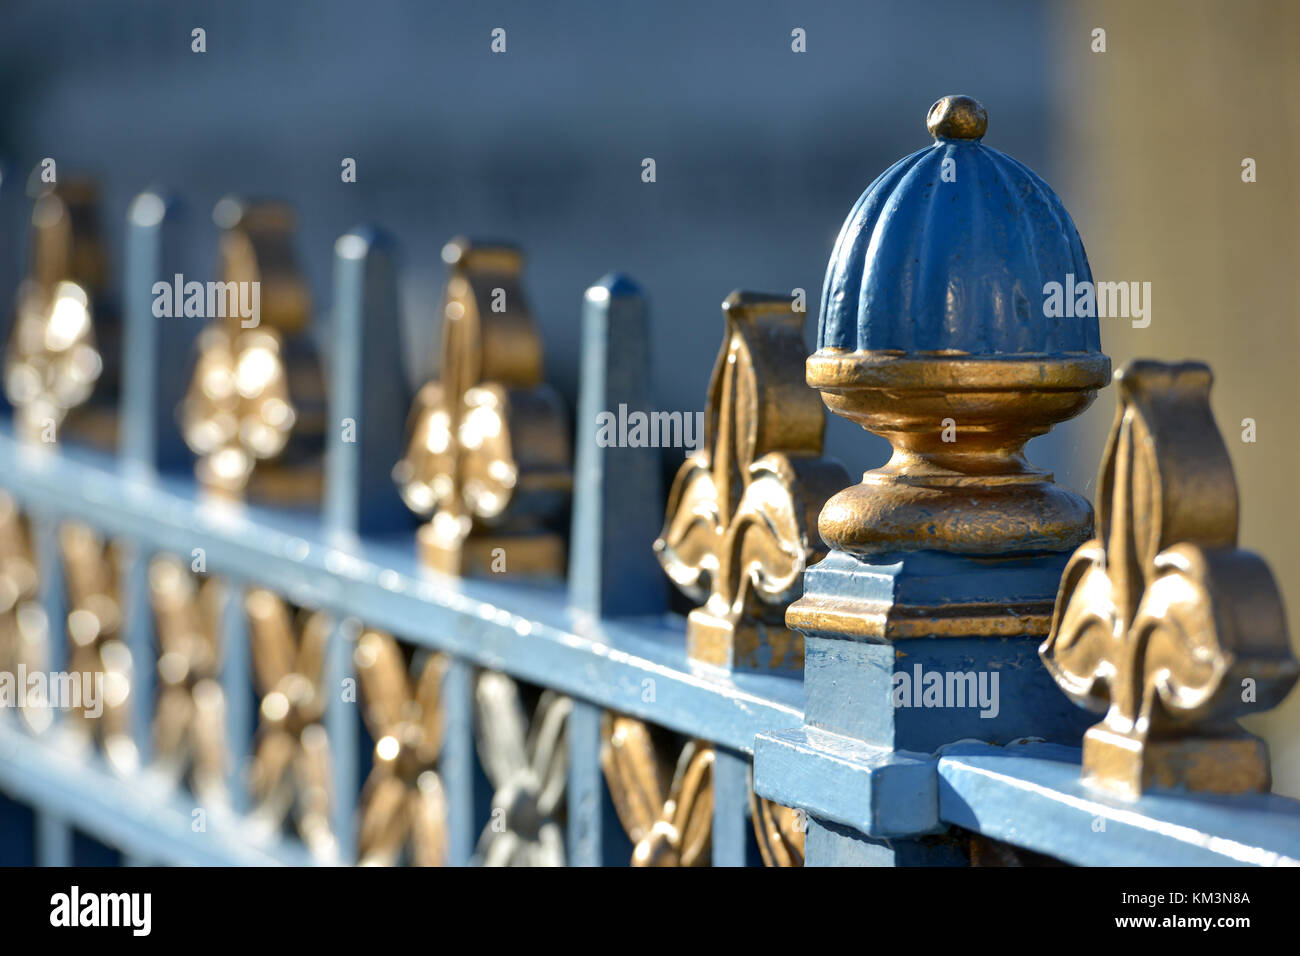 Blue and gold railings in Little Venice, City of Westminster, London, on an autumn day. - Stock Image